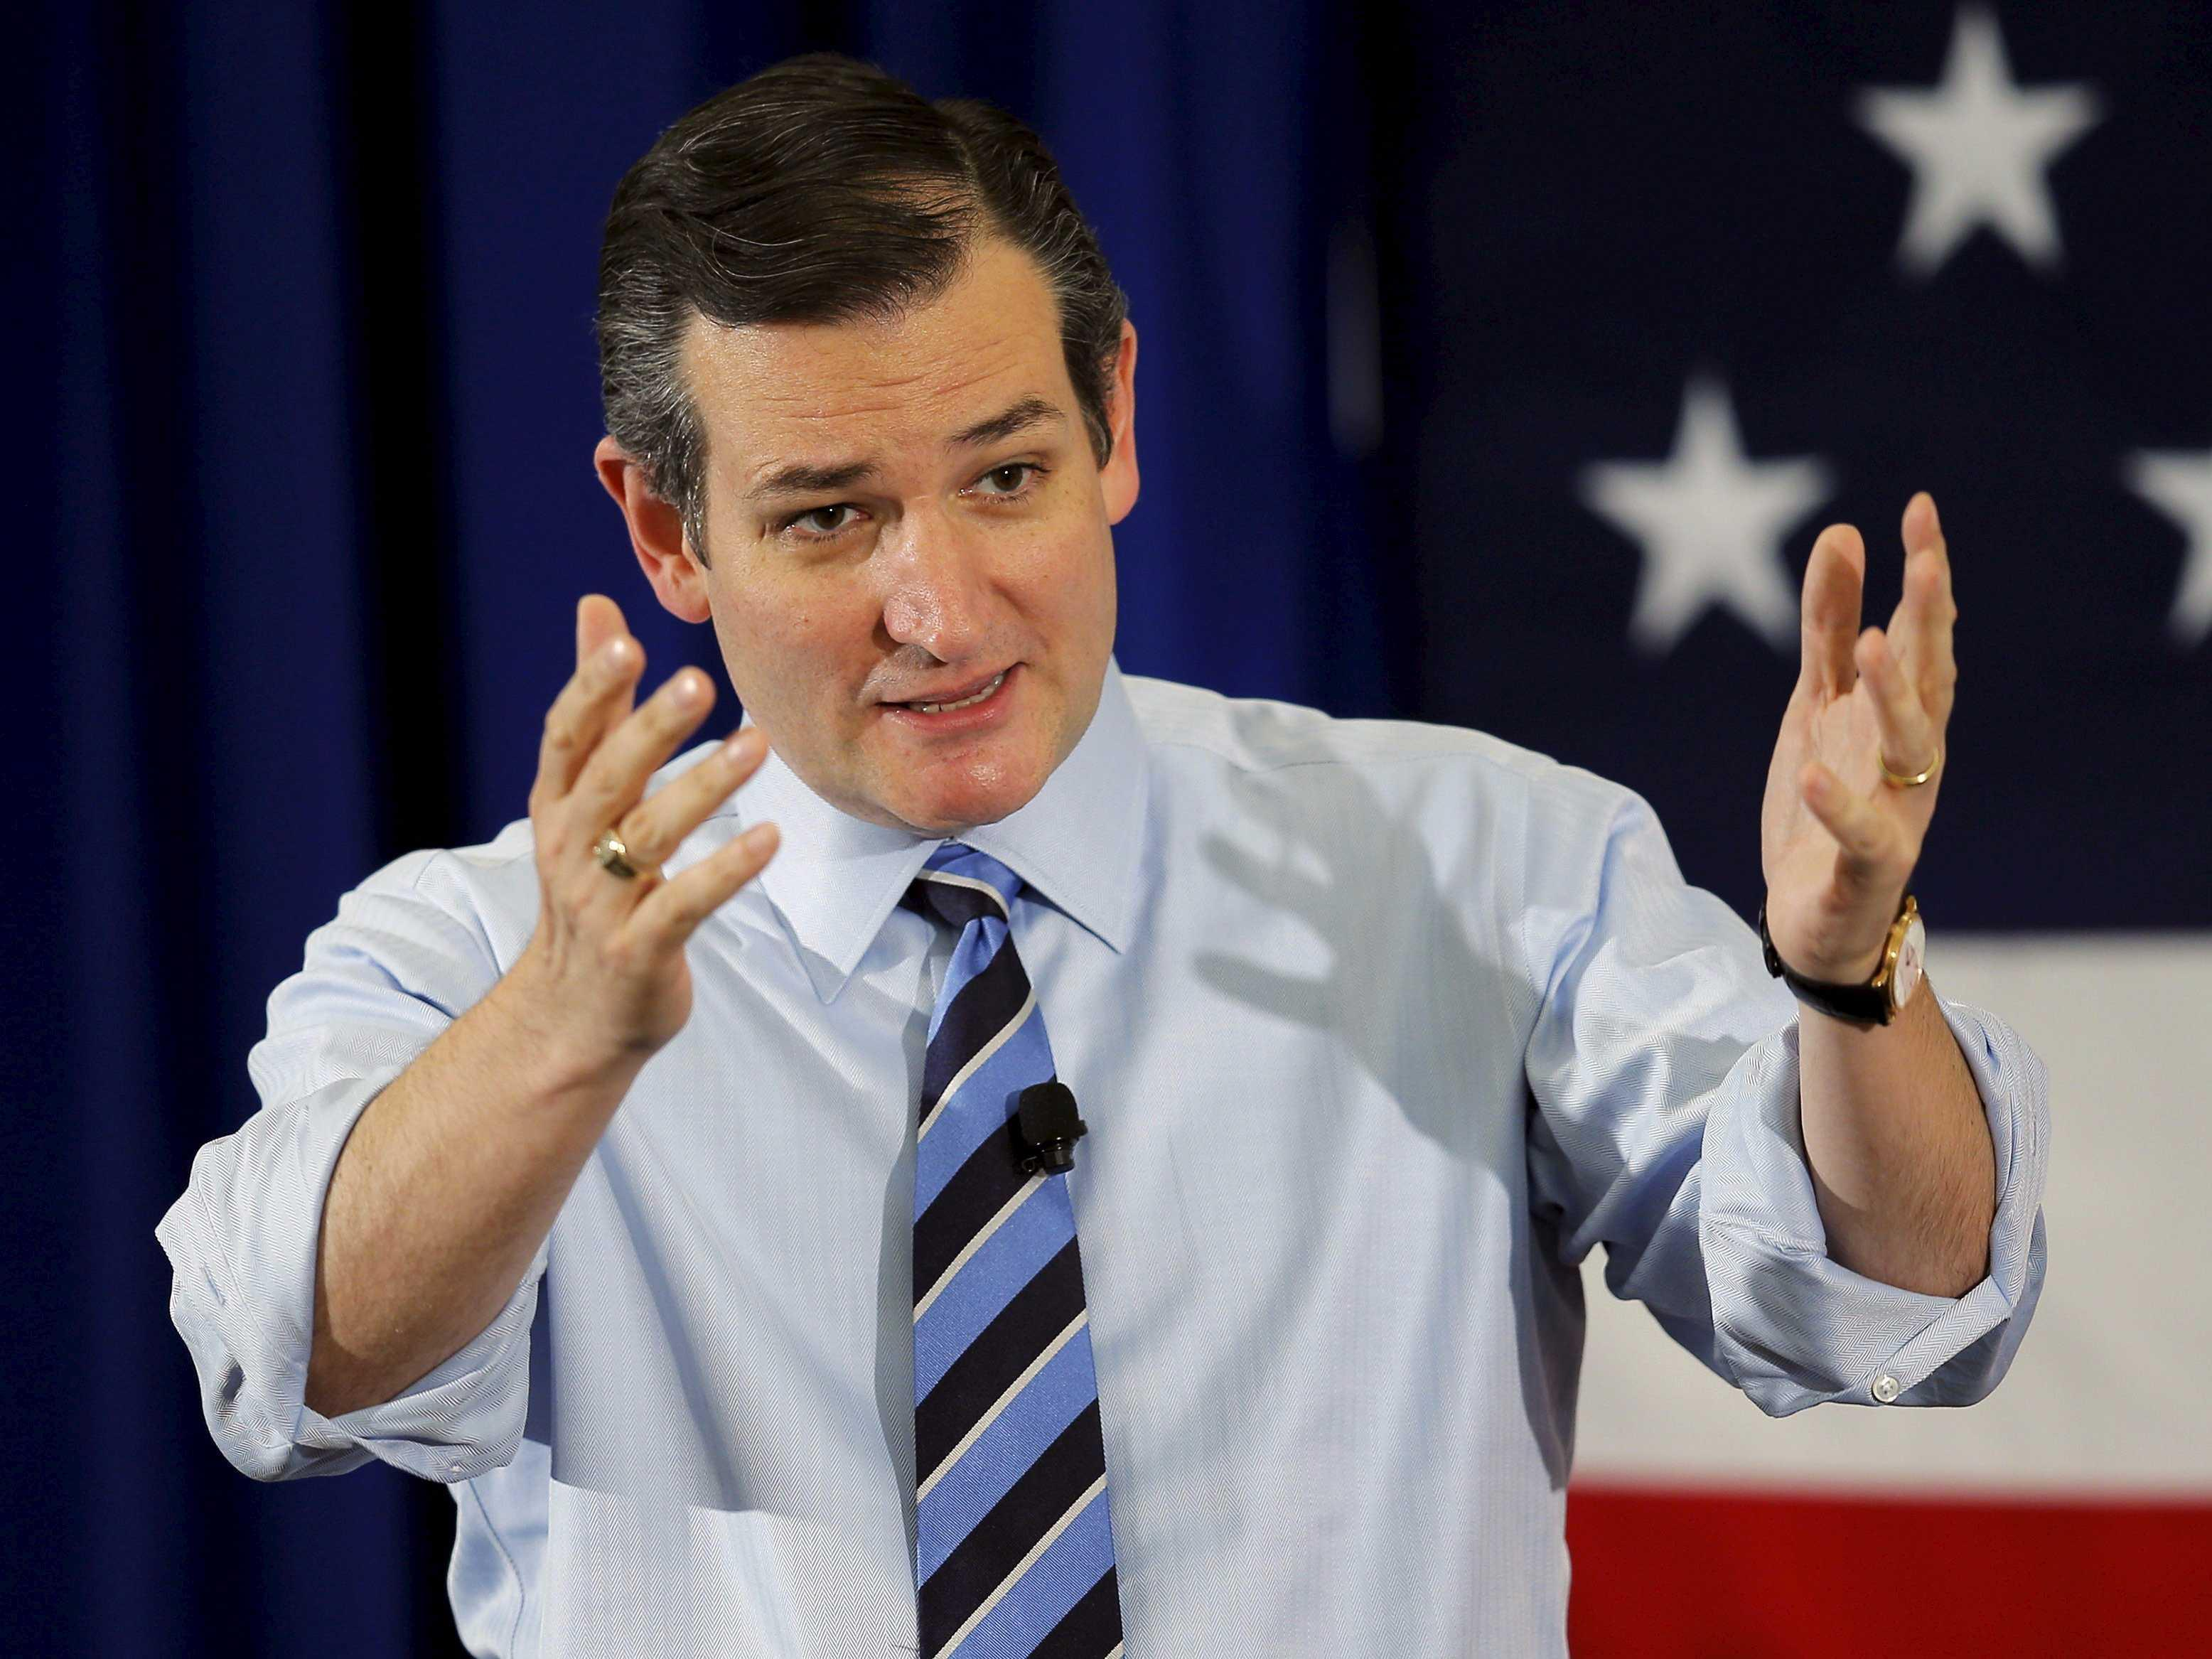 Gay hotel owners 'deeply sorry' for hosting Ted Cruz event